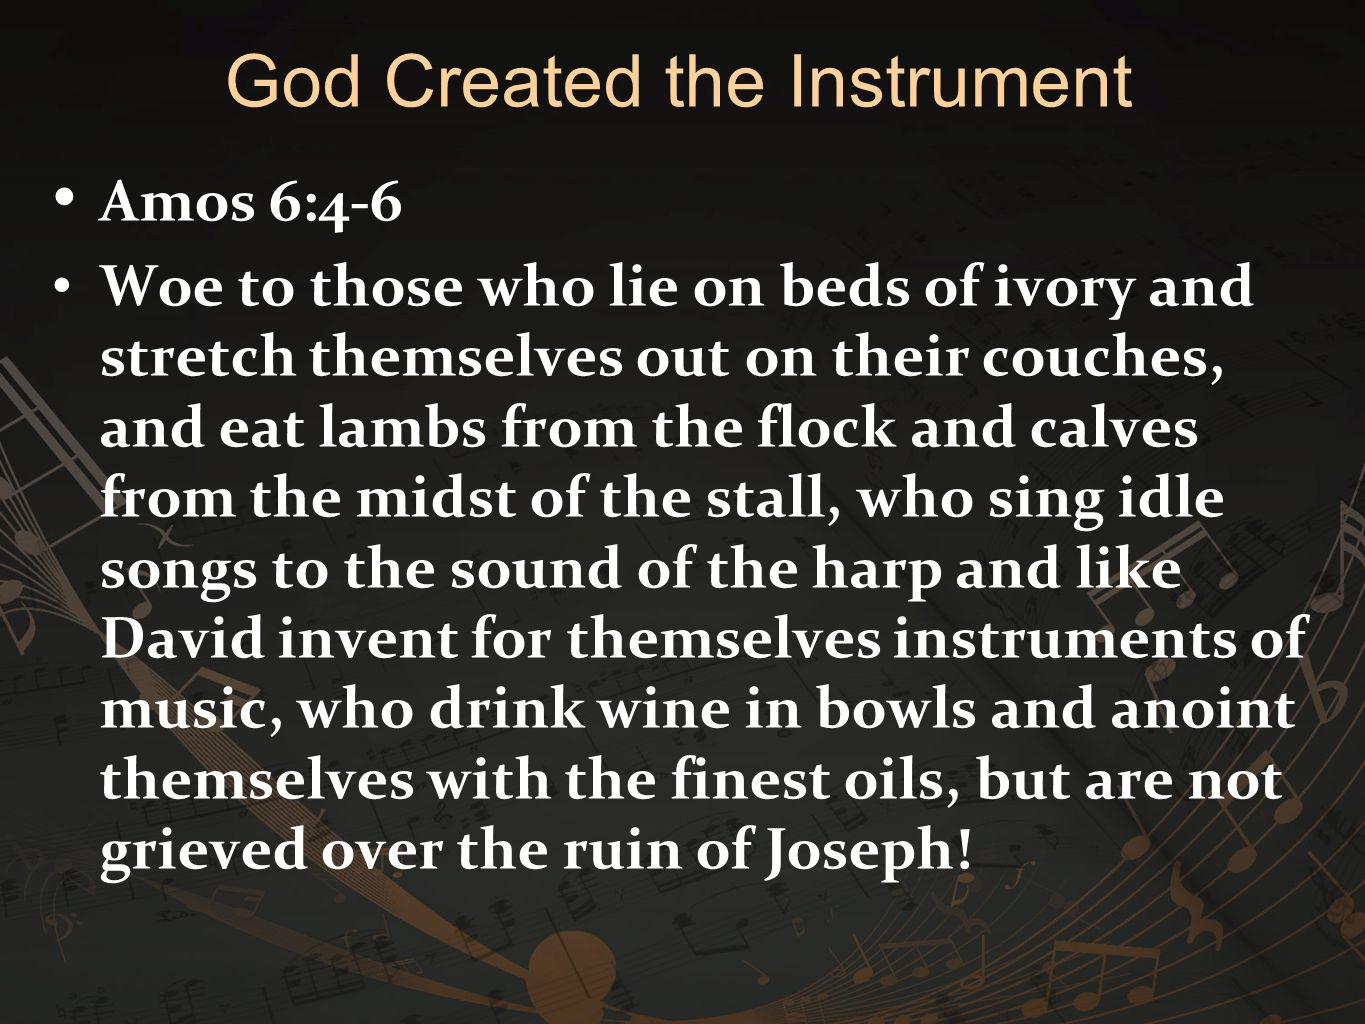 Amos 6:4-6 Woe to those who lie on beds of ivory and stretch themselves out on their couches, and eat lambs from the flock and calves from the midst o